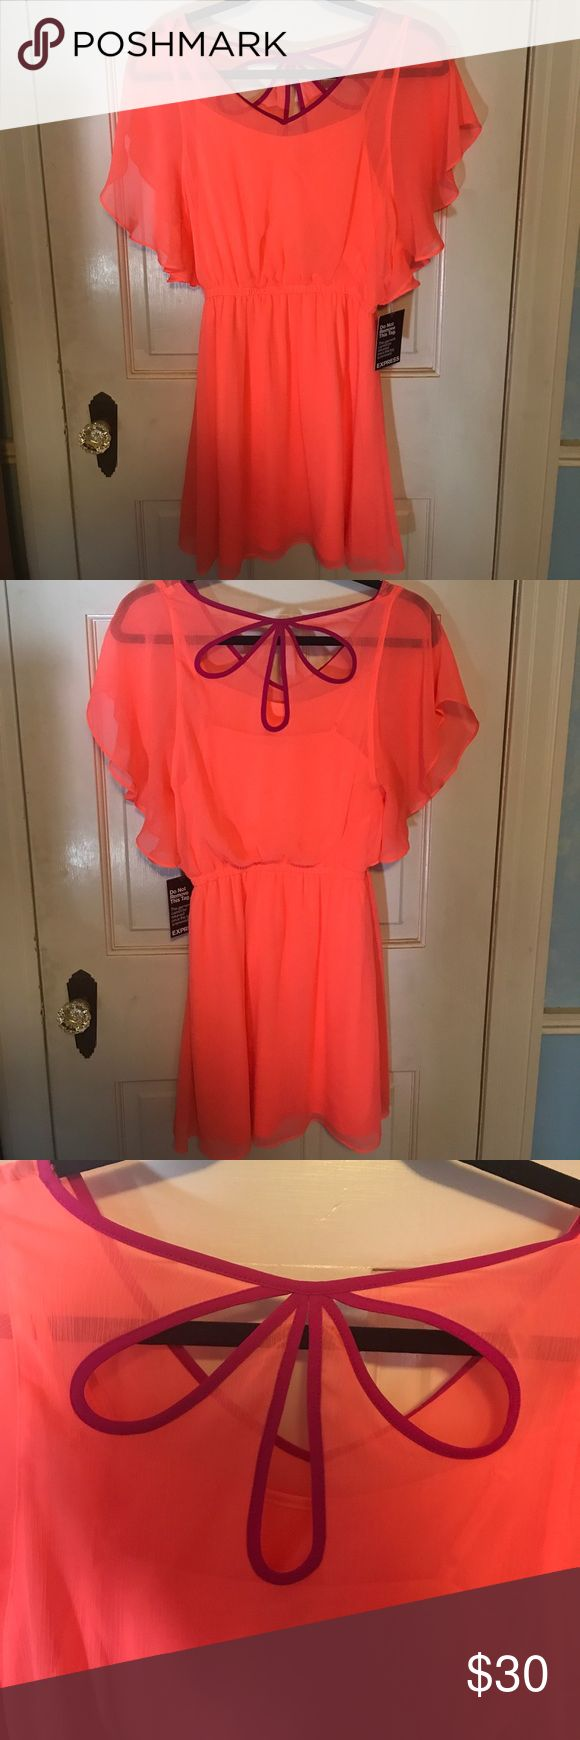 Coral/orange mini dress with pink detail NWT Coral/orange mini dress from Express. Perfect for a summer event when you want to stand out in a bright color. Never worn Express Dresses Mini